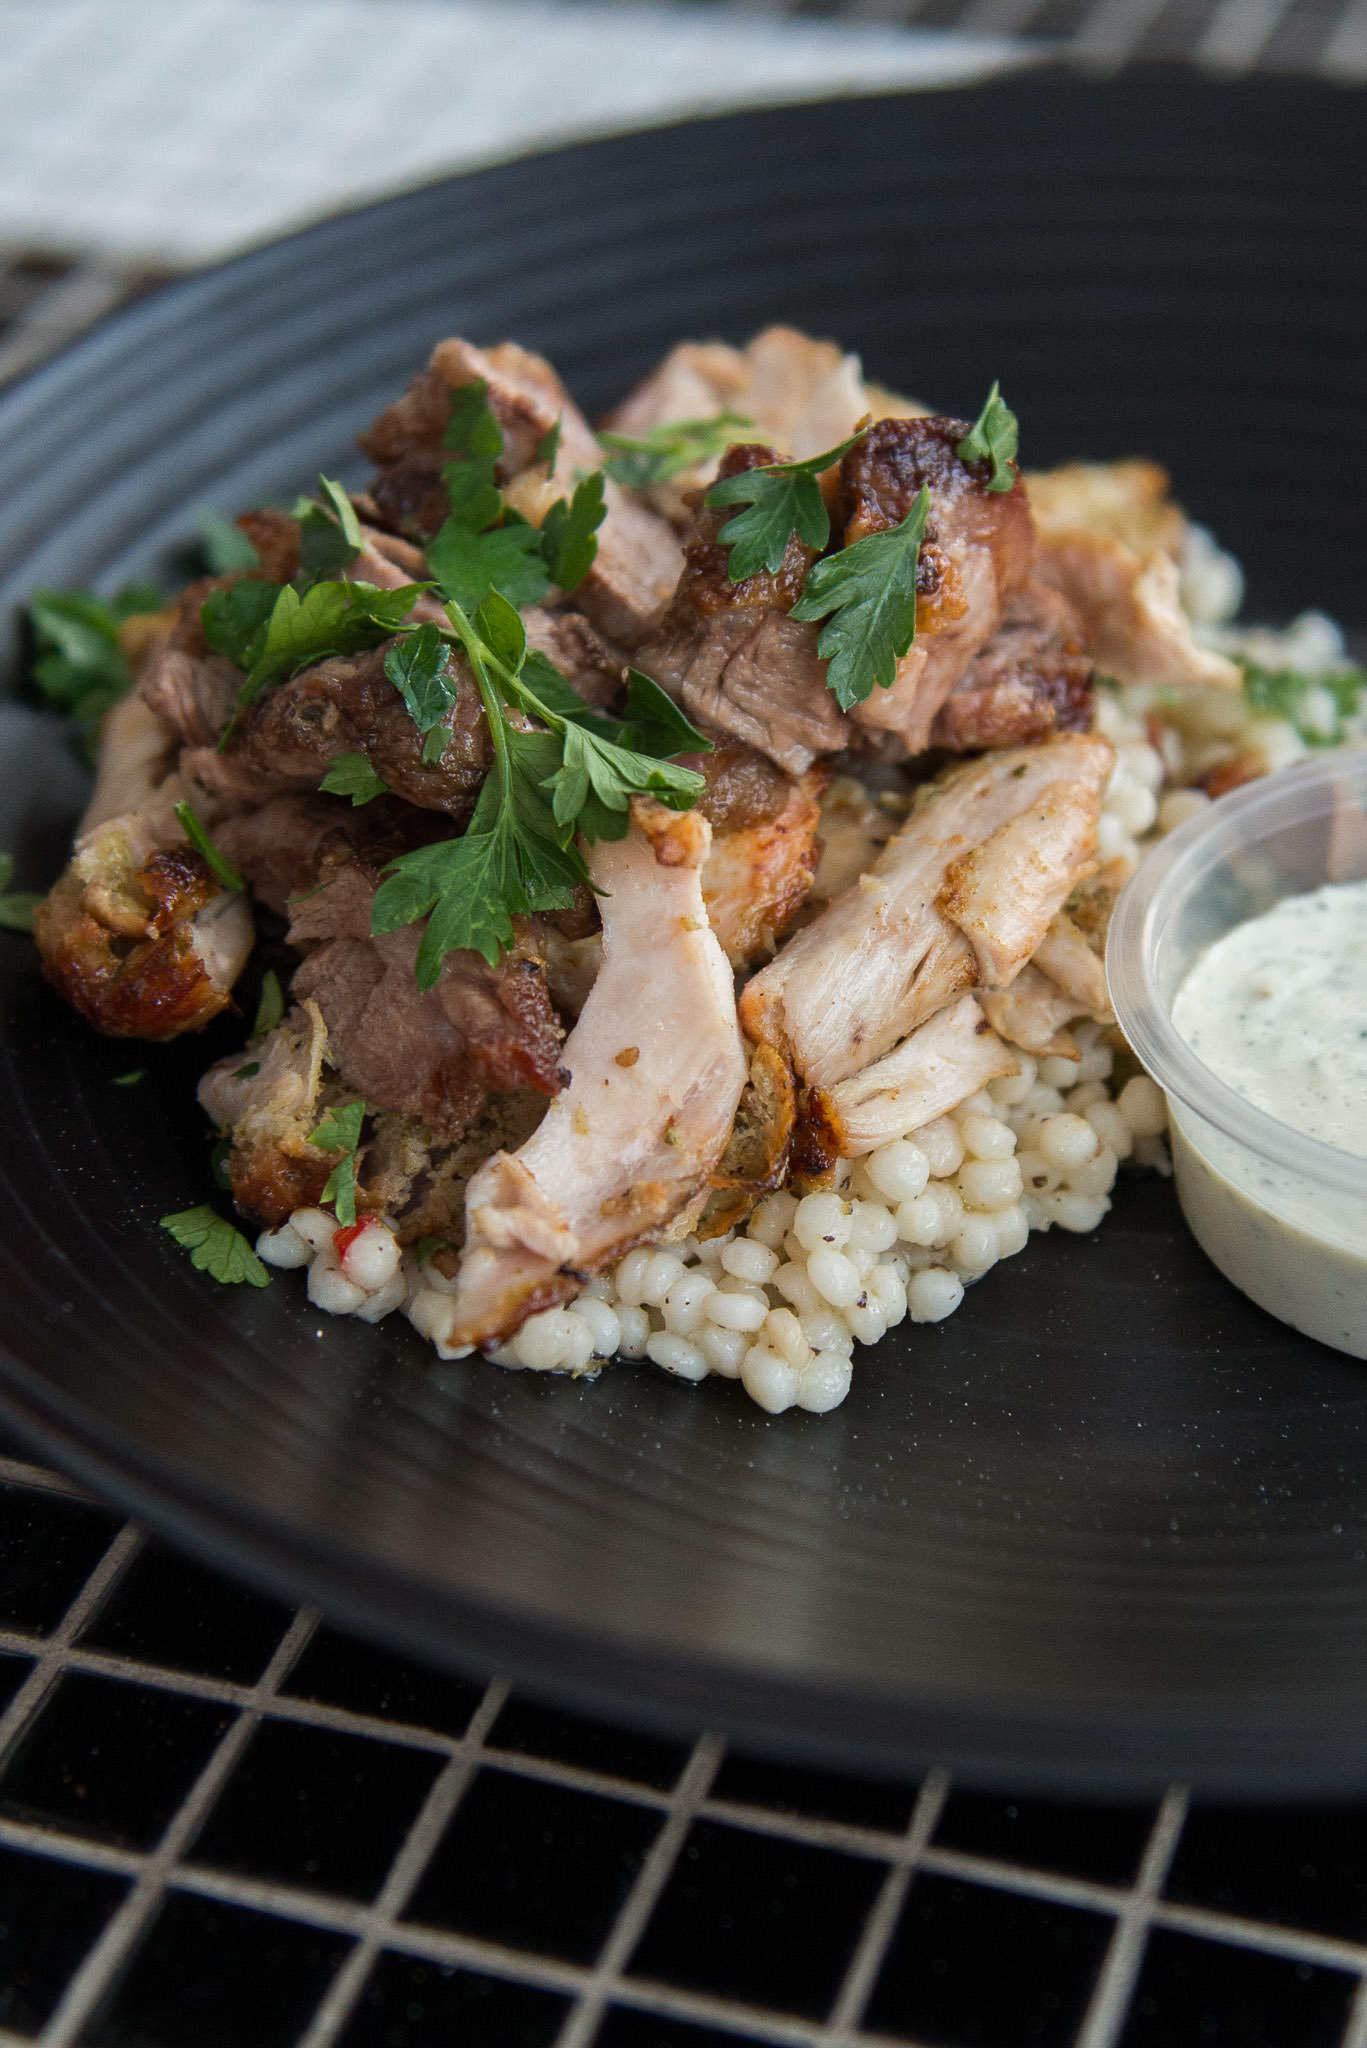 Marinated Arkady Margaret River lamb and Mount Barker chicken, cooked over charcoal, served with tzatziki and giant couscous (AU$27)